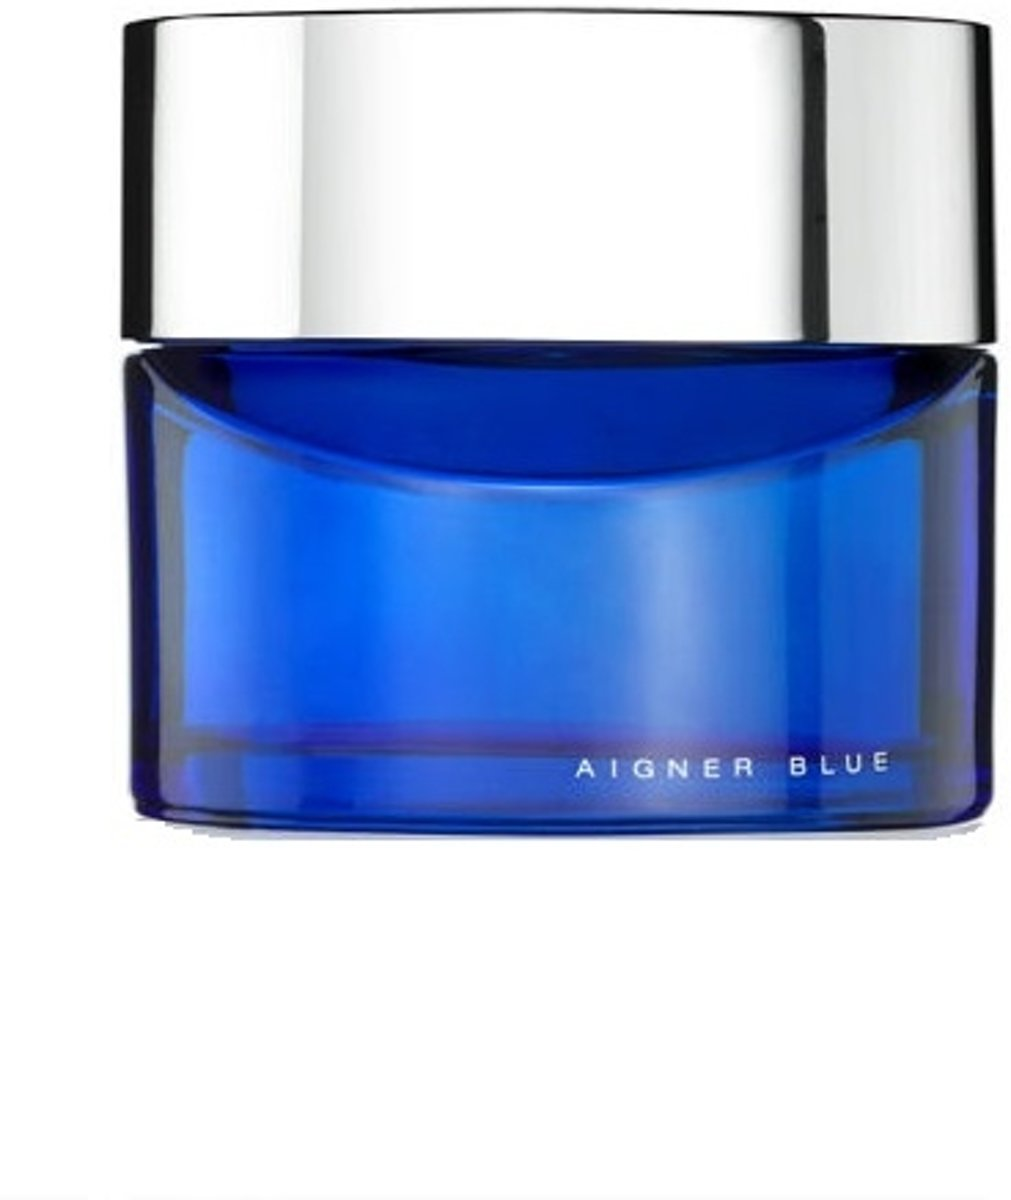 Aigner - Eau de toilette - Blue for Men - 125 ml